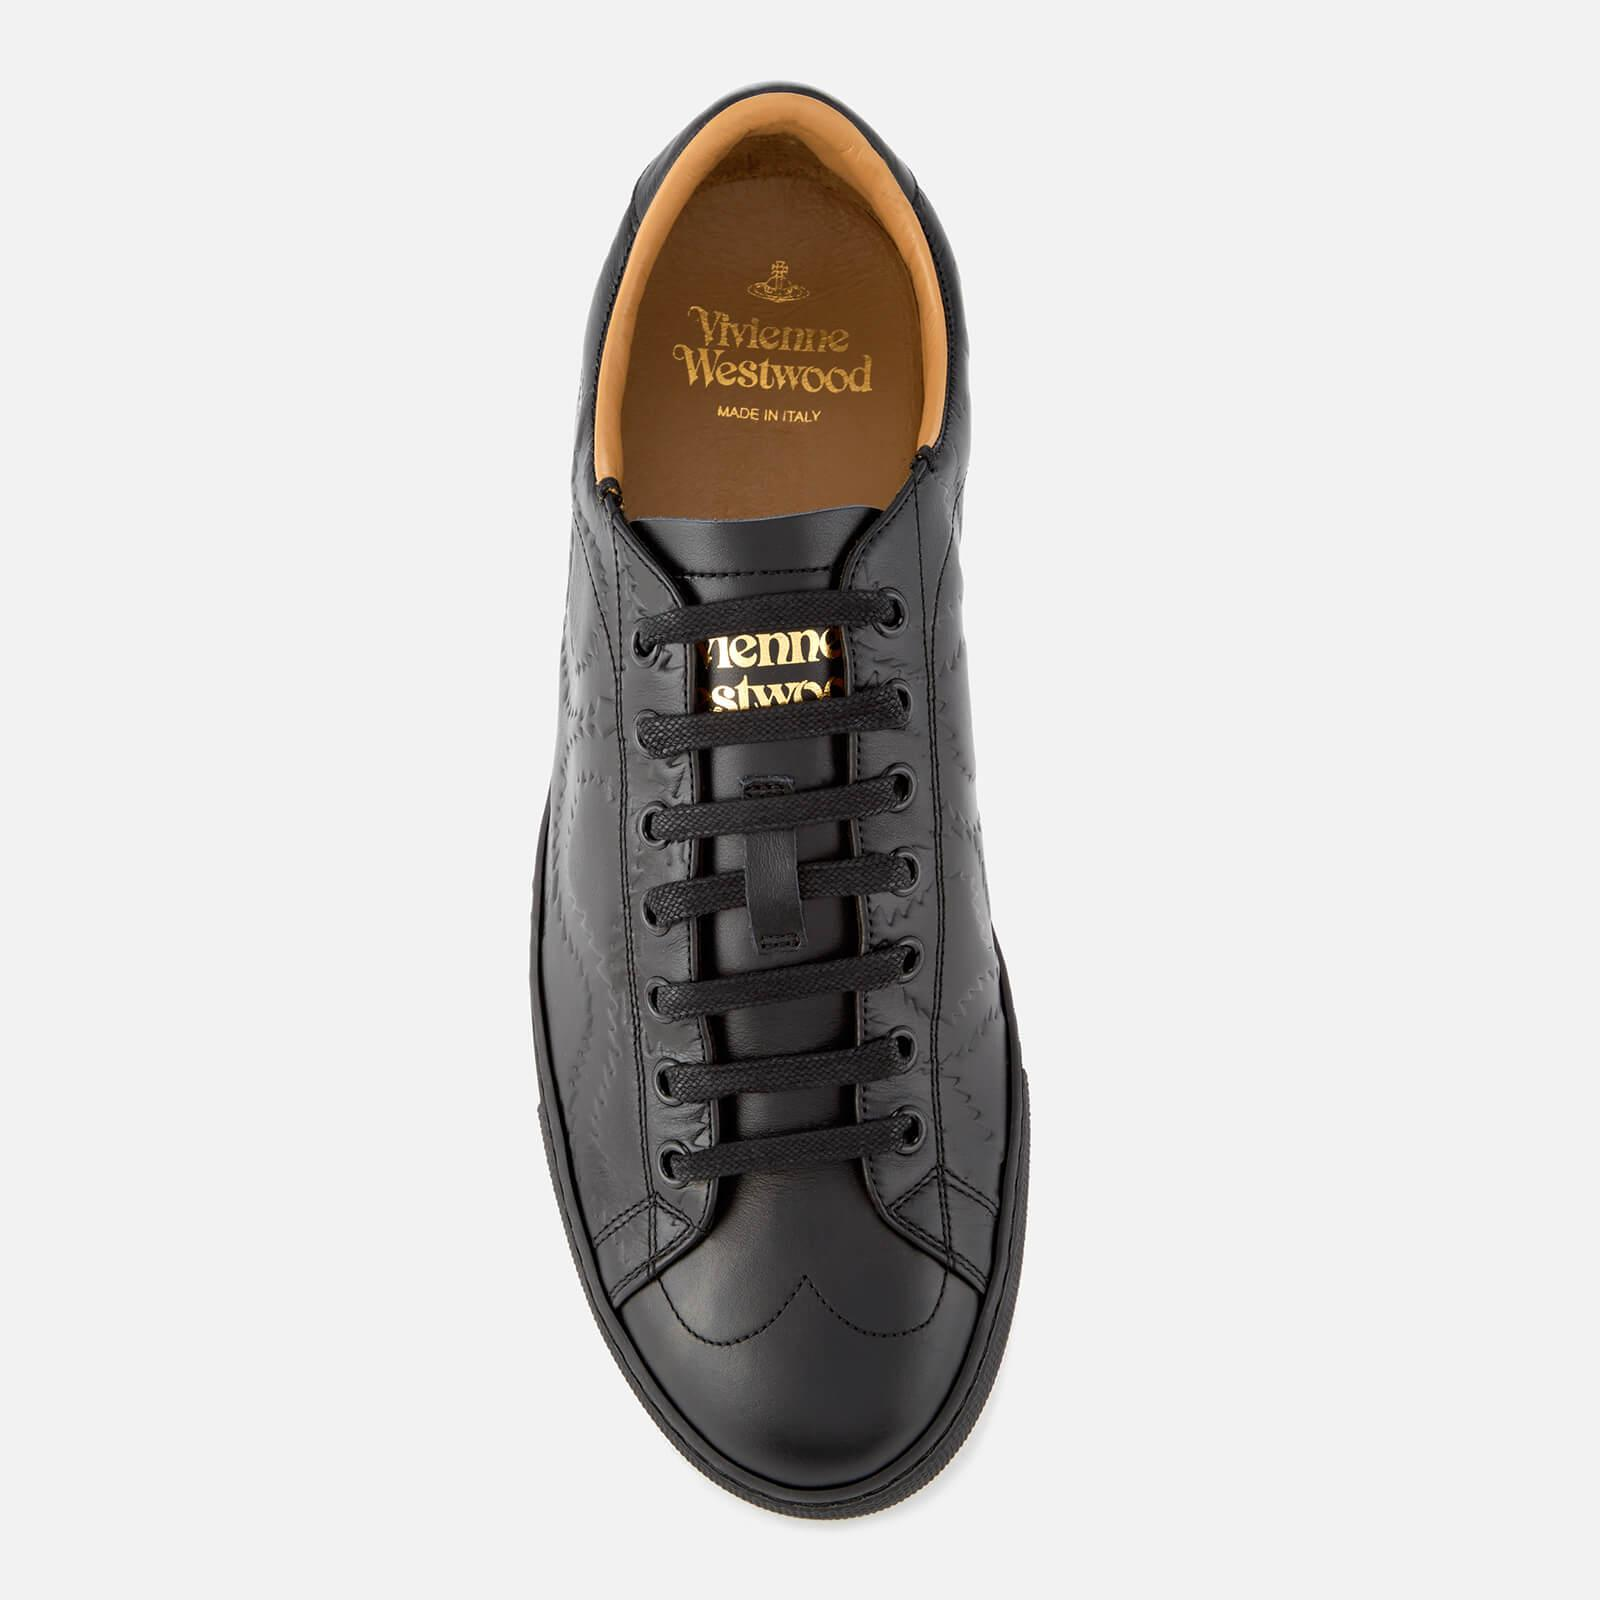 c6abc29c20558 Vivienne Westwood Men's Derby Leather Low Top Trainers in Black for ...